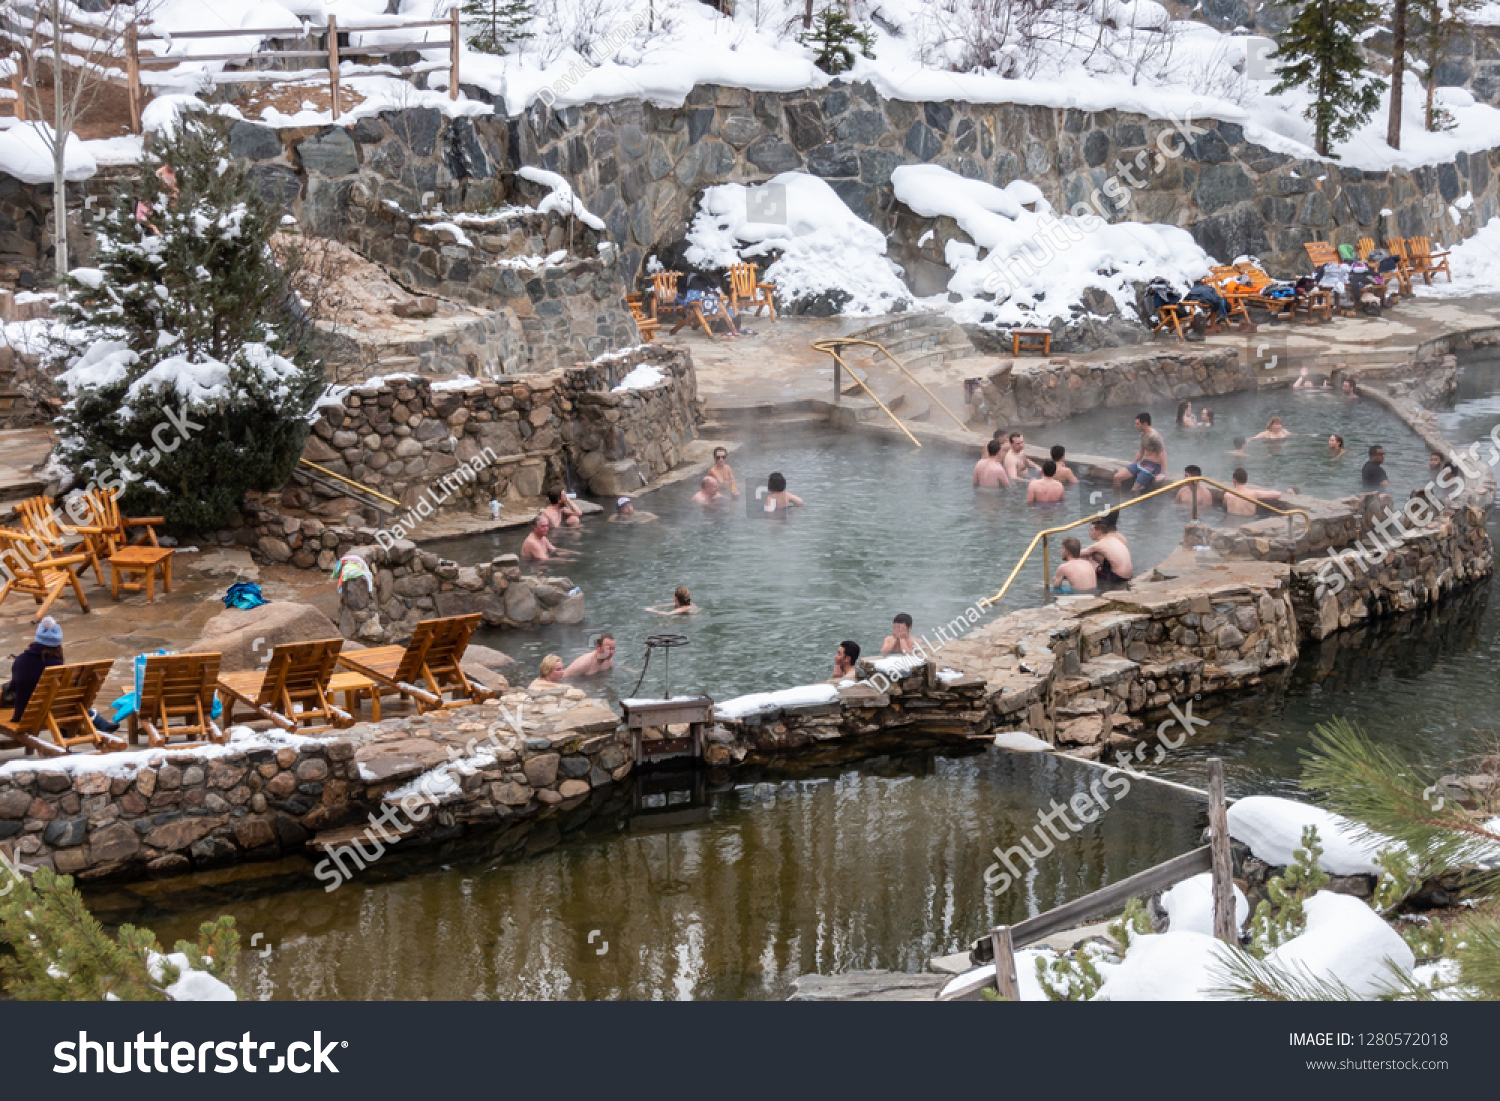 Steamboat Springs, Colorado - December 19, 2018: People enjoy the outdoor Stawberry Park Hot Springs, to relax in the hot water after a day of skiing on the nearby slopes of Mount Werner.